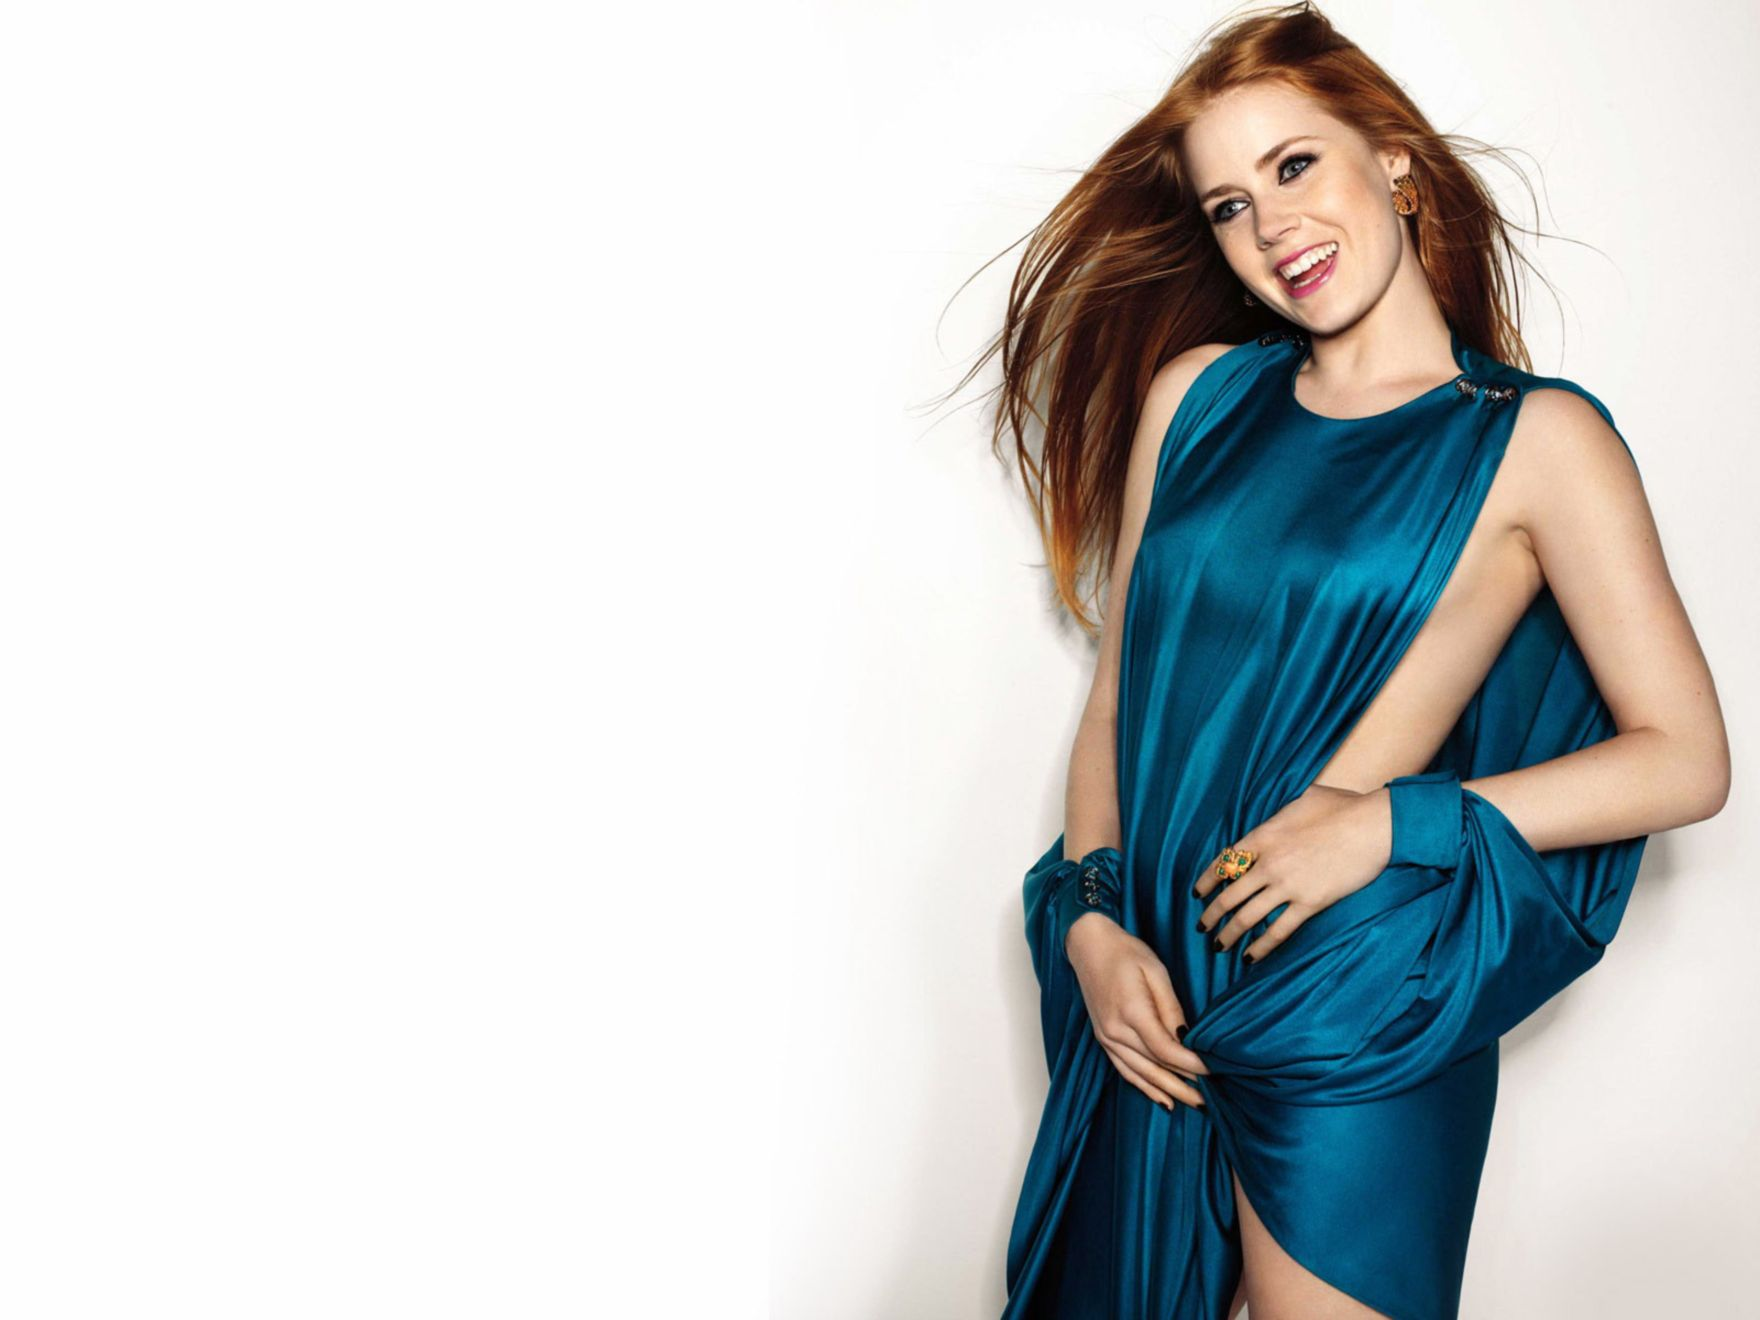 Download free HD Amy Adams 5 Normal Wallpaper, image